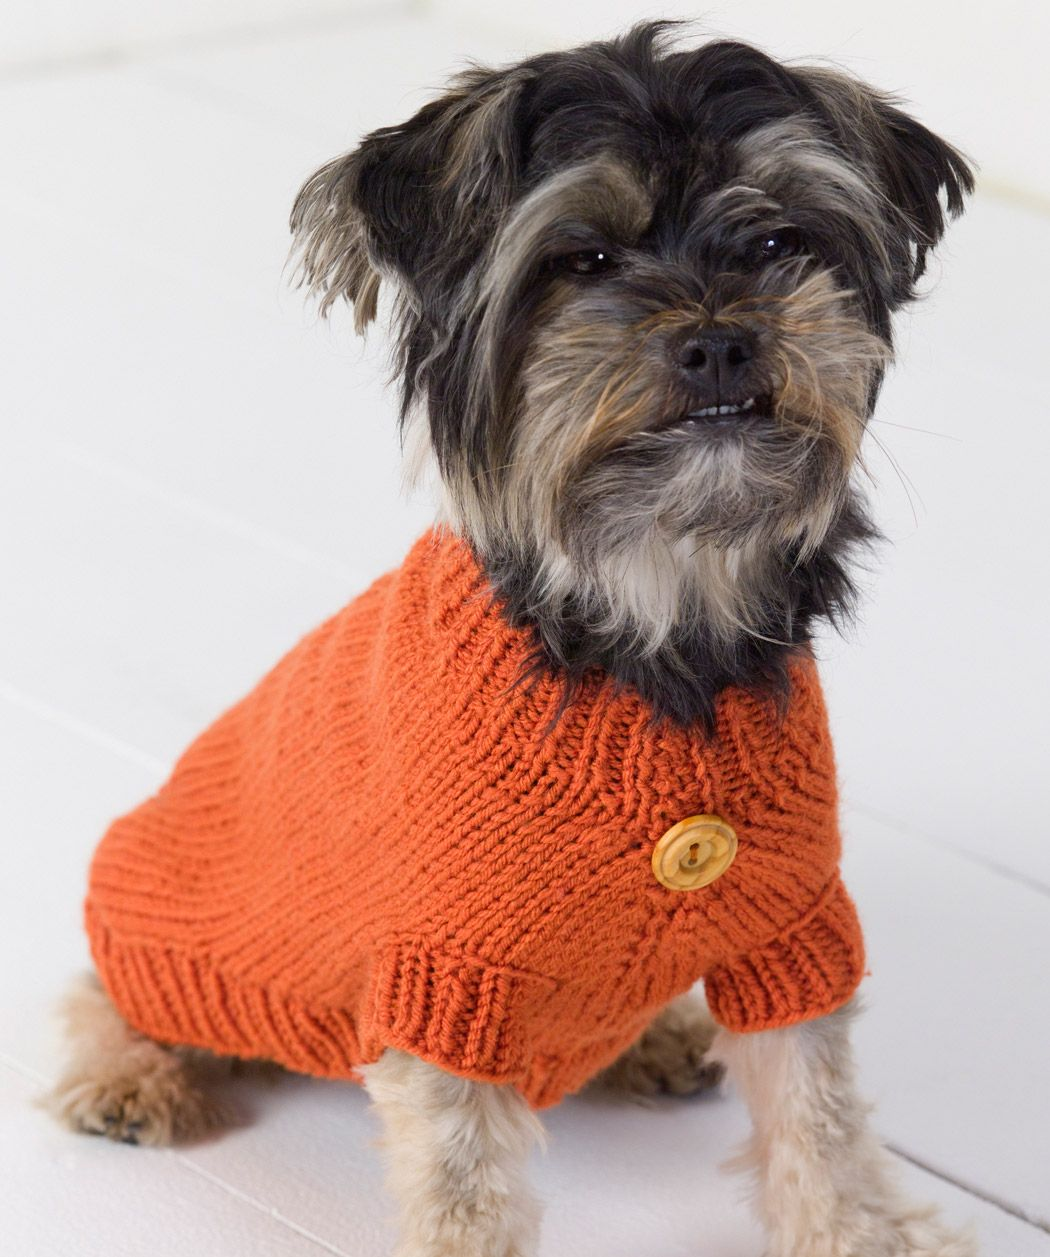 Life is Ruff Knit Dog Sweater | Knit patterns, Dog and Sweater ...